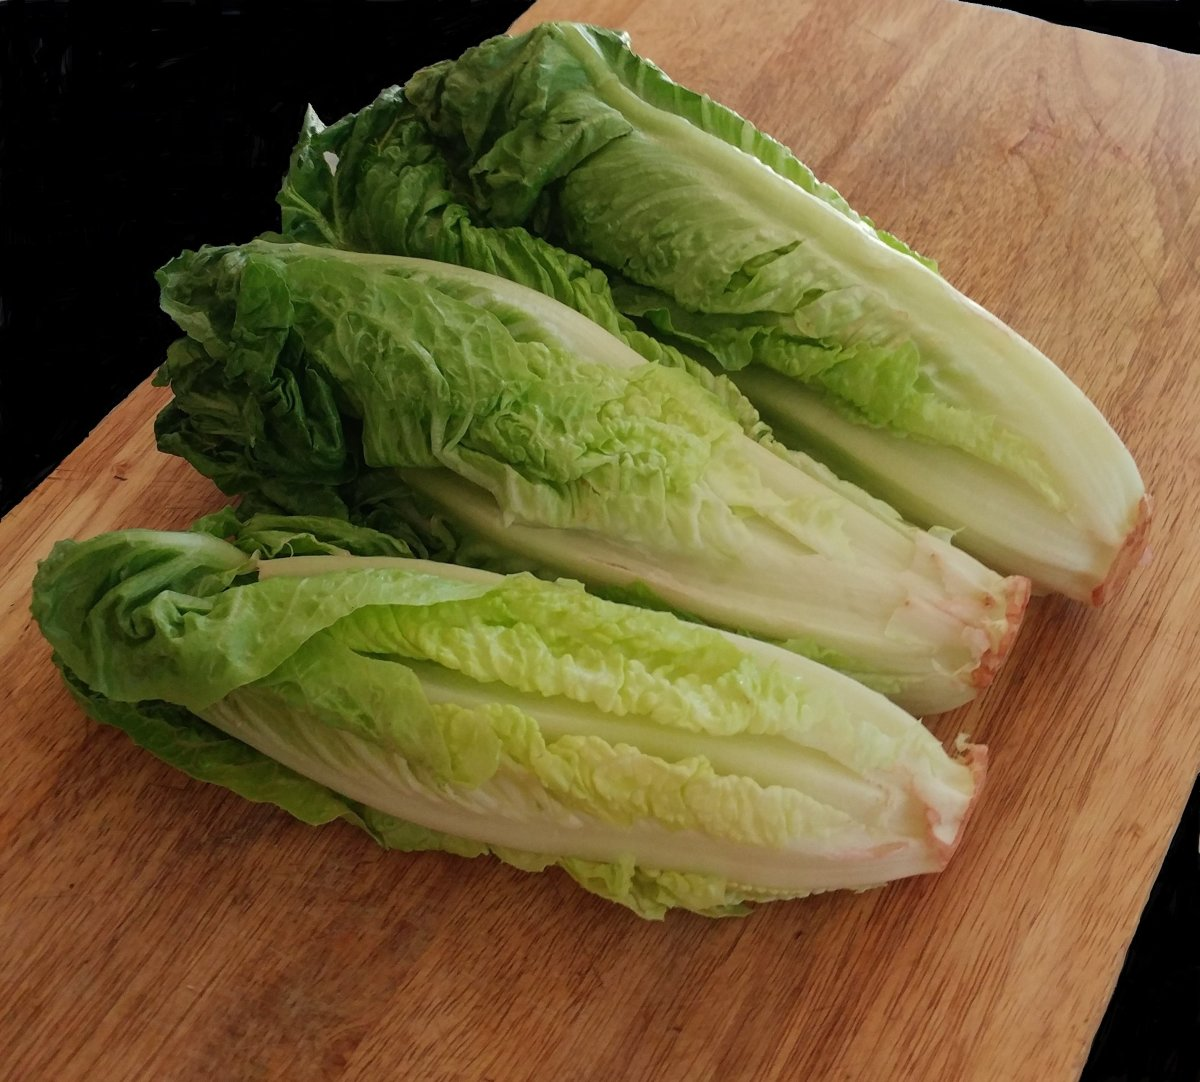 Growing Romaine Lettuce From Cuttings